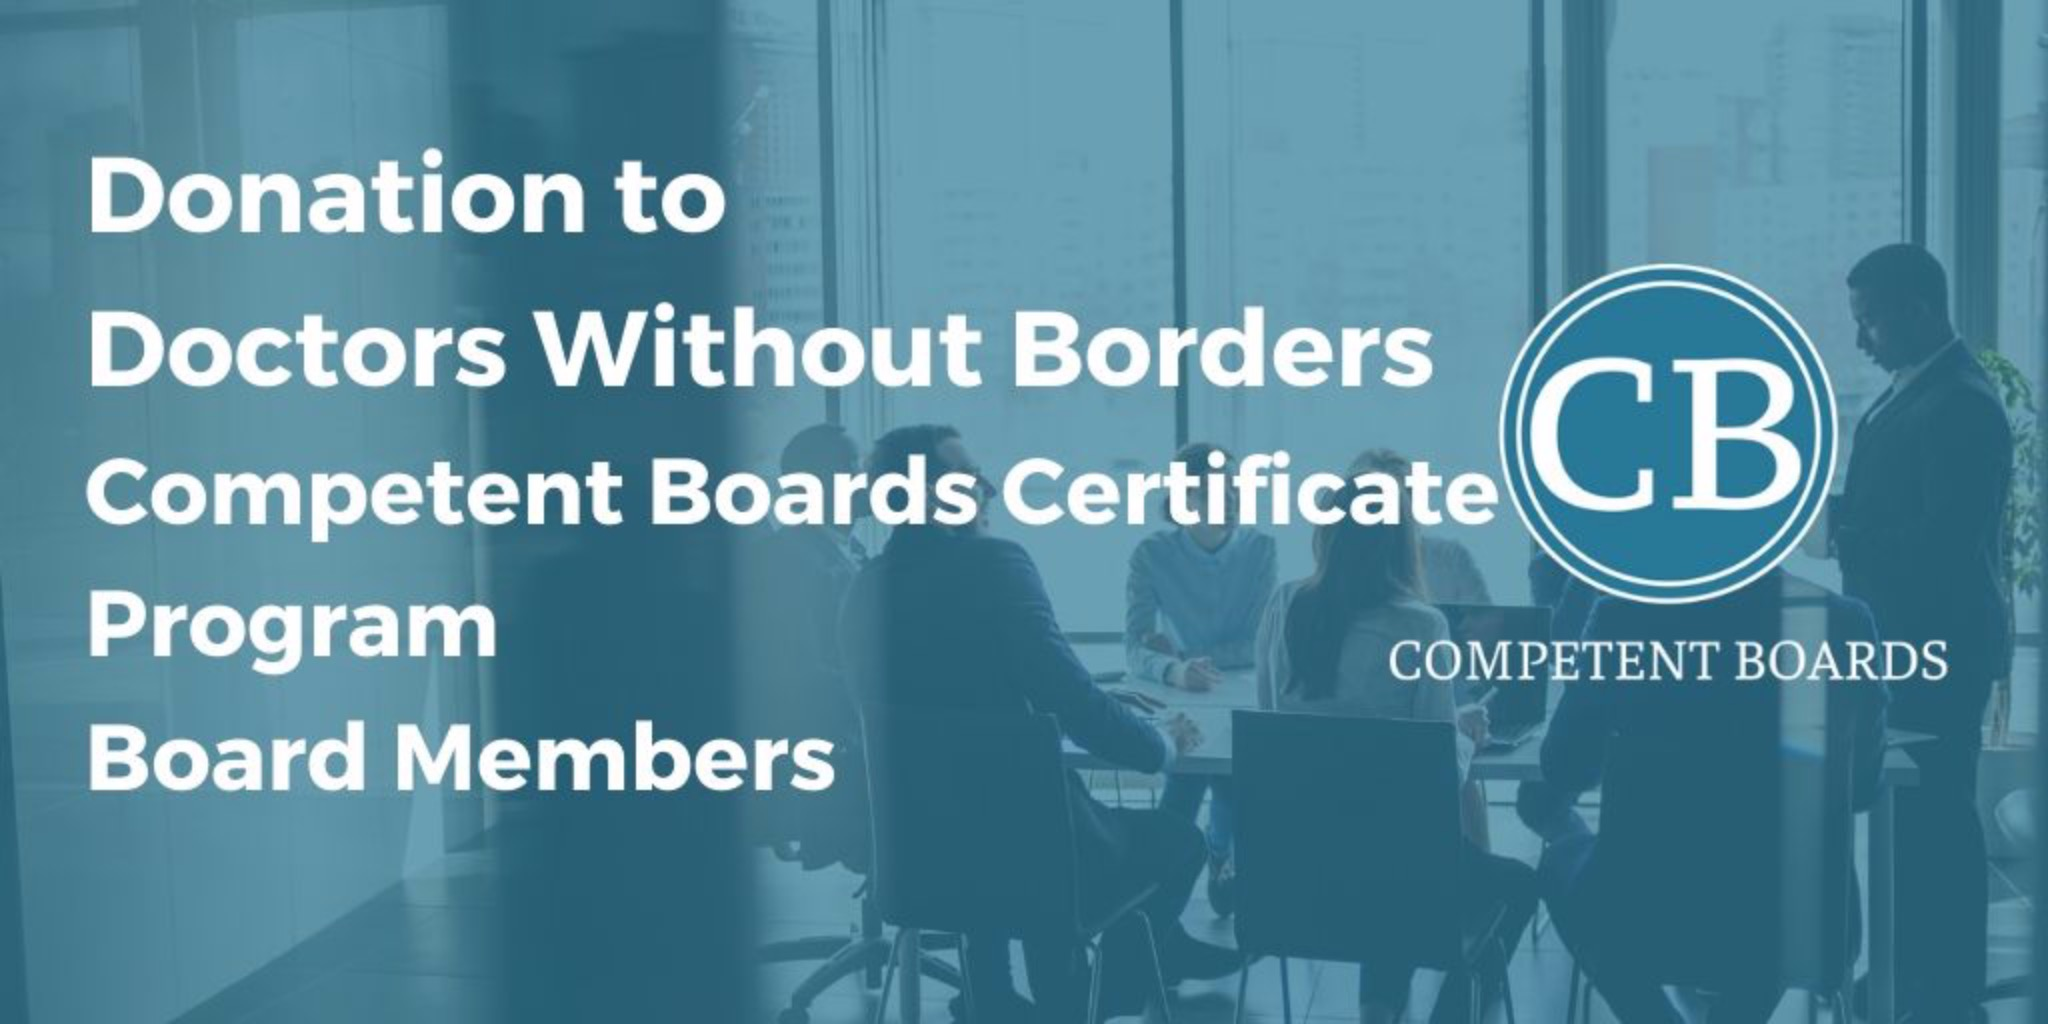 Certificate Program Board Members Sept - Mar: Donation to Doctors Without Borders